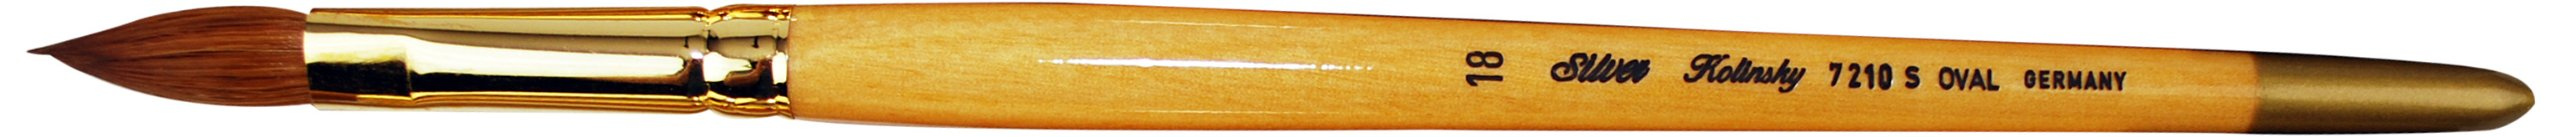 Silver Brush 7210S-18 Silver Kolinsky Sable Short Handle Excellent Quality Brush, Oval, Size 18